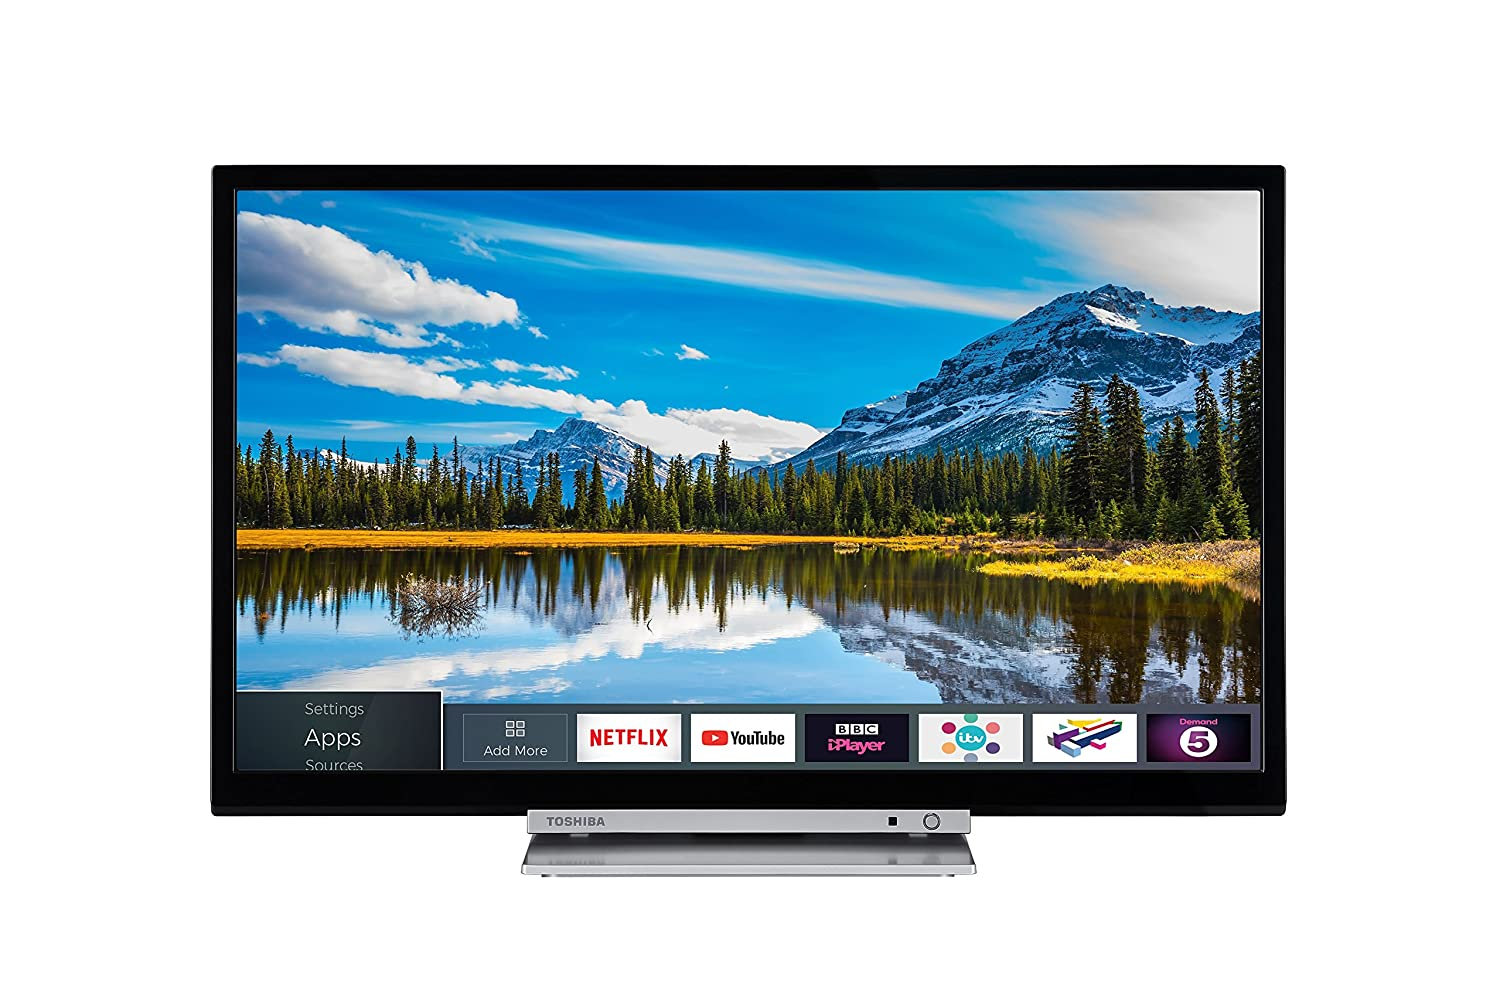 49de08e49ec Toshiba 24D3863DB 24-Inch HD Ready Smart TV Freeview Play Built In ...